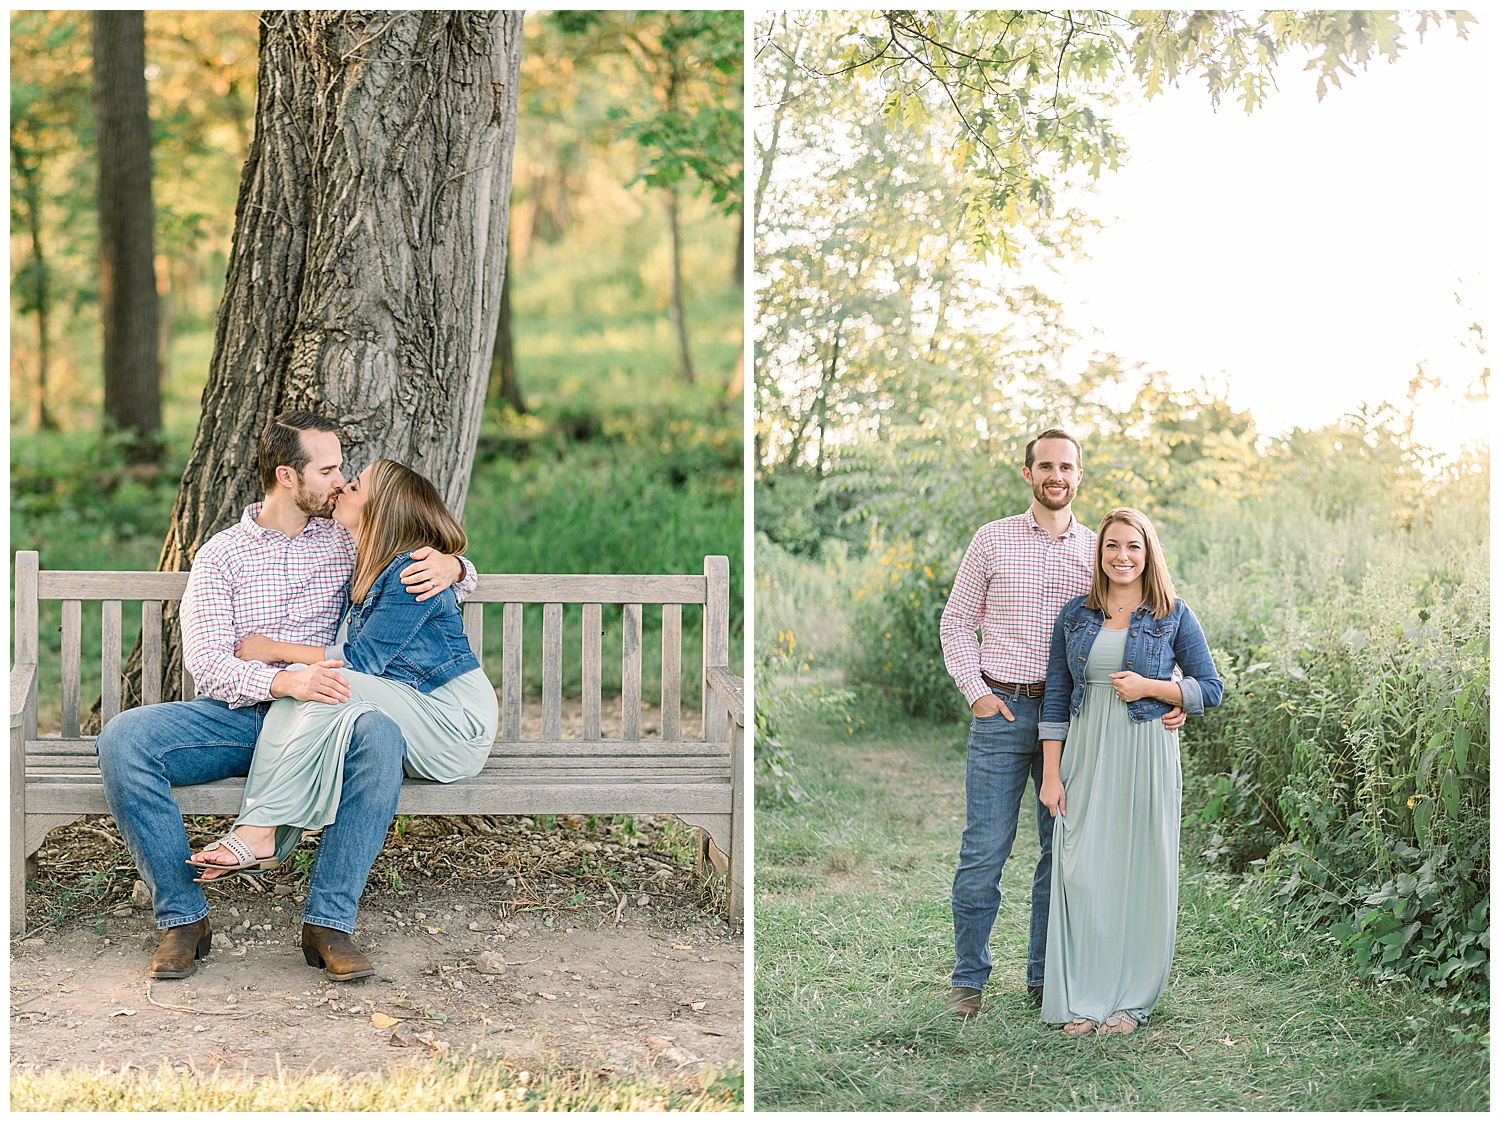 Cox_Arboretum_Anniversary_Session_Miamisburg_Ohio_Cassandra_Janina_Photography_Ohio_Wedding_Photographer_0266.jpg